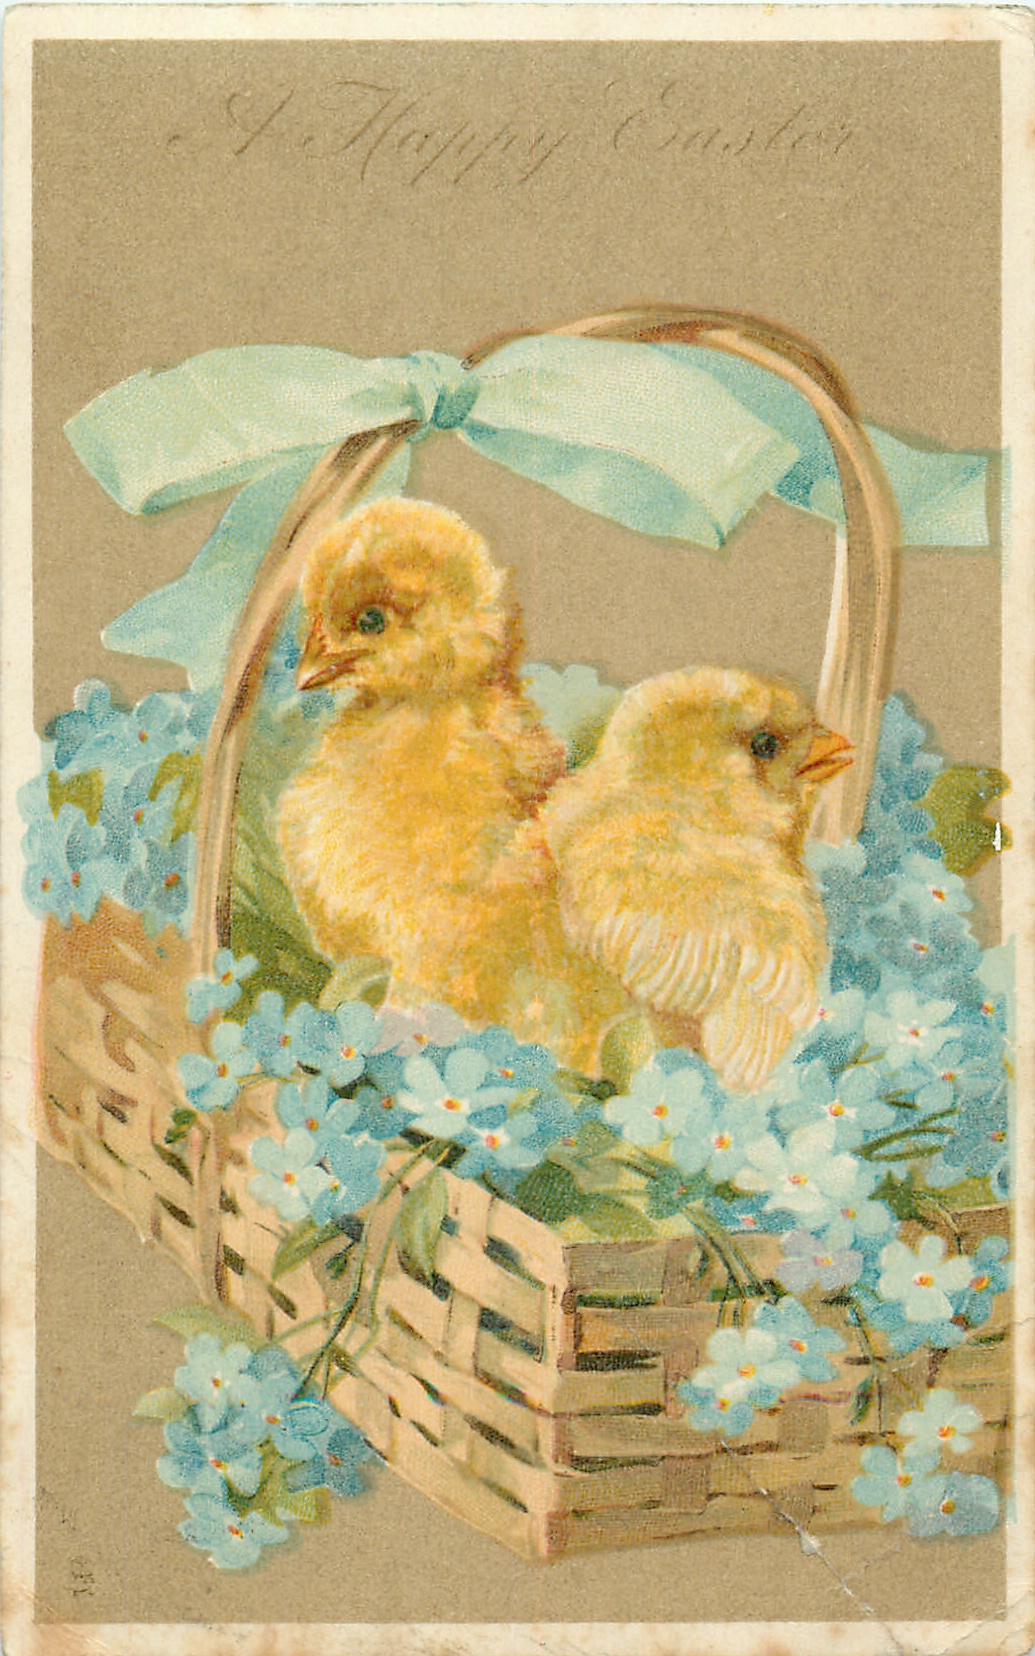 A HAPPY EASTER  two chicks in basket of forget-me-nots